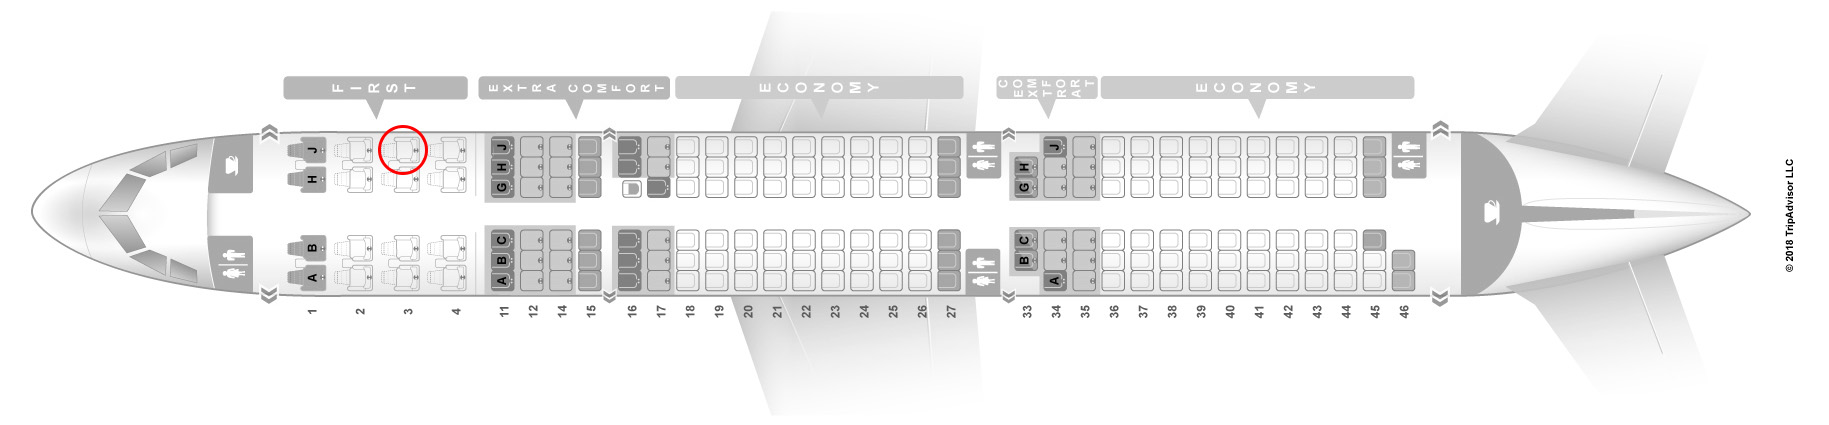 Hawaiian Airlines A321neo seat map